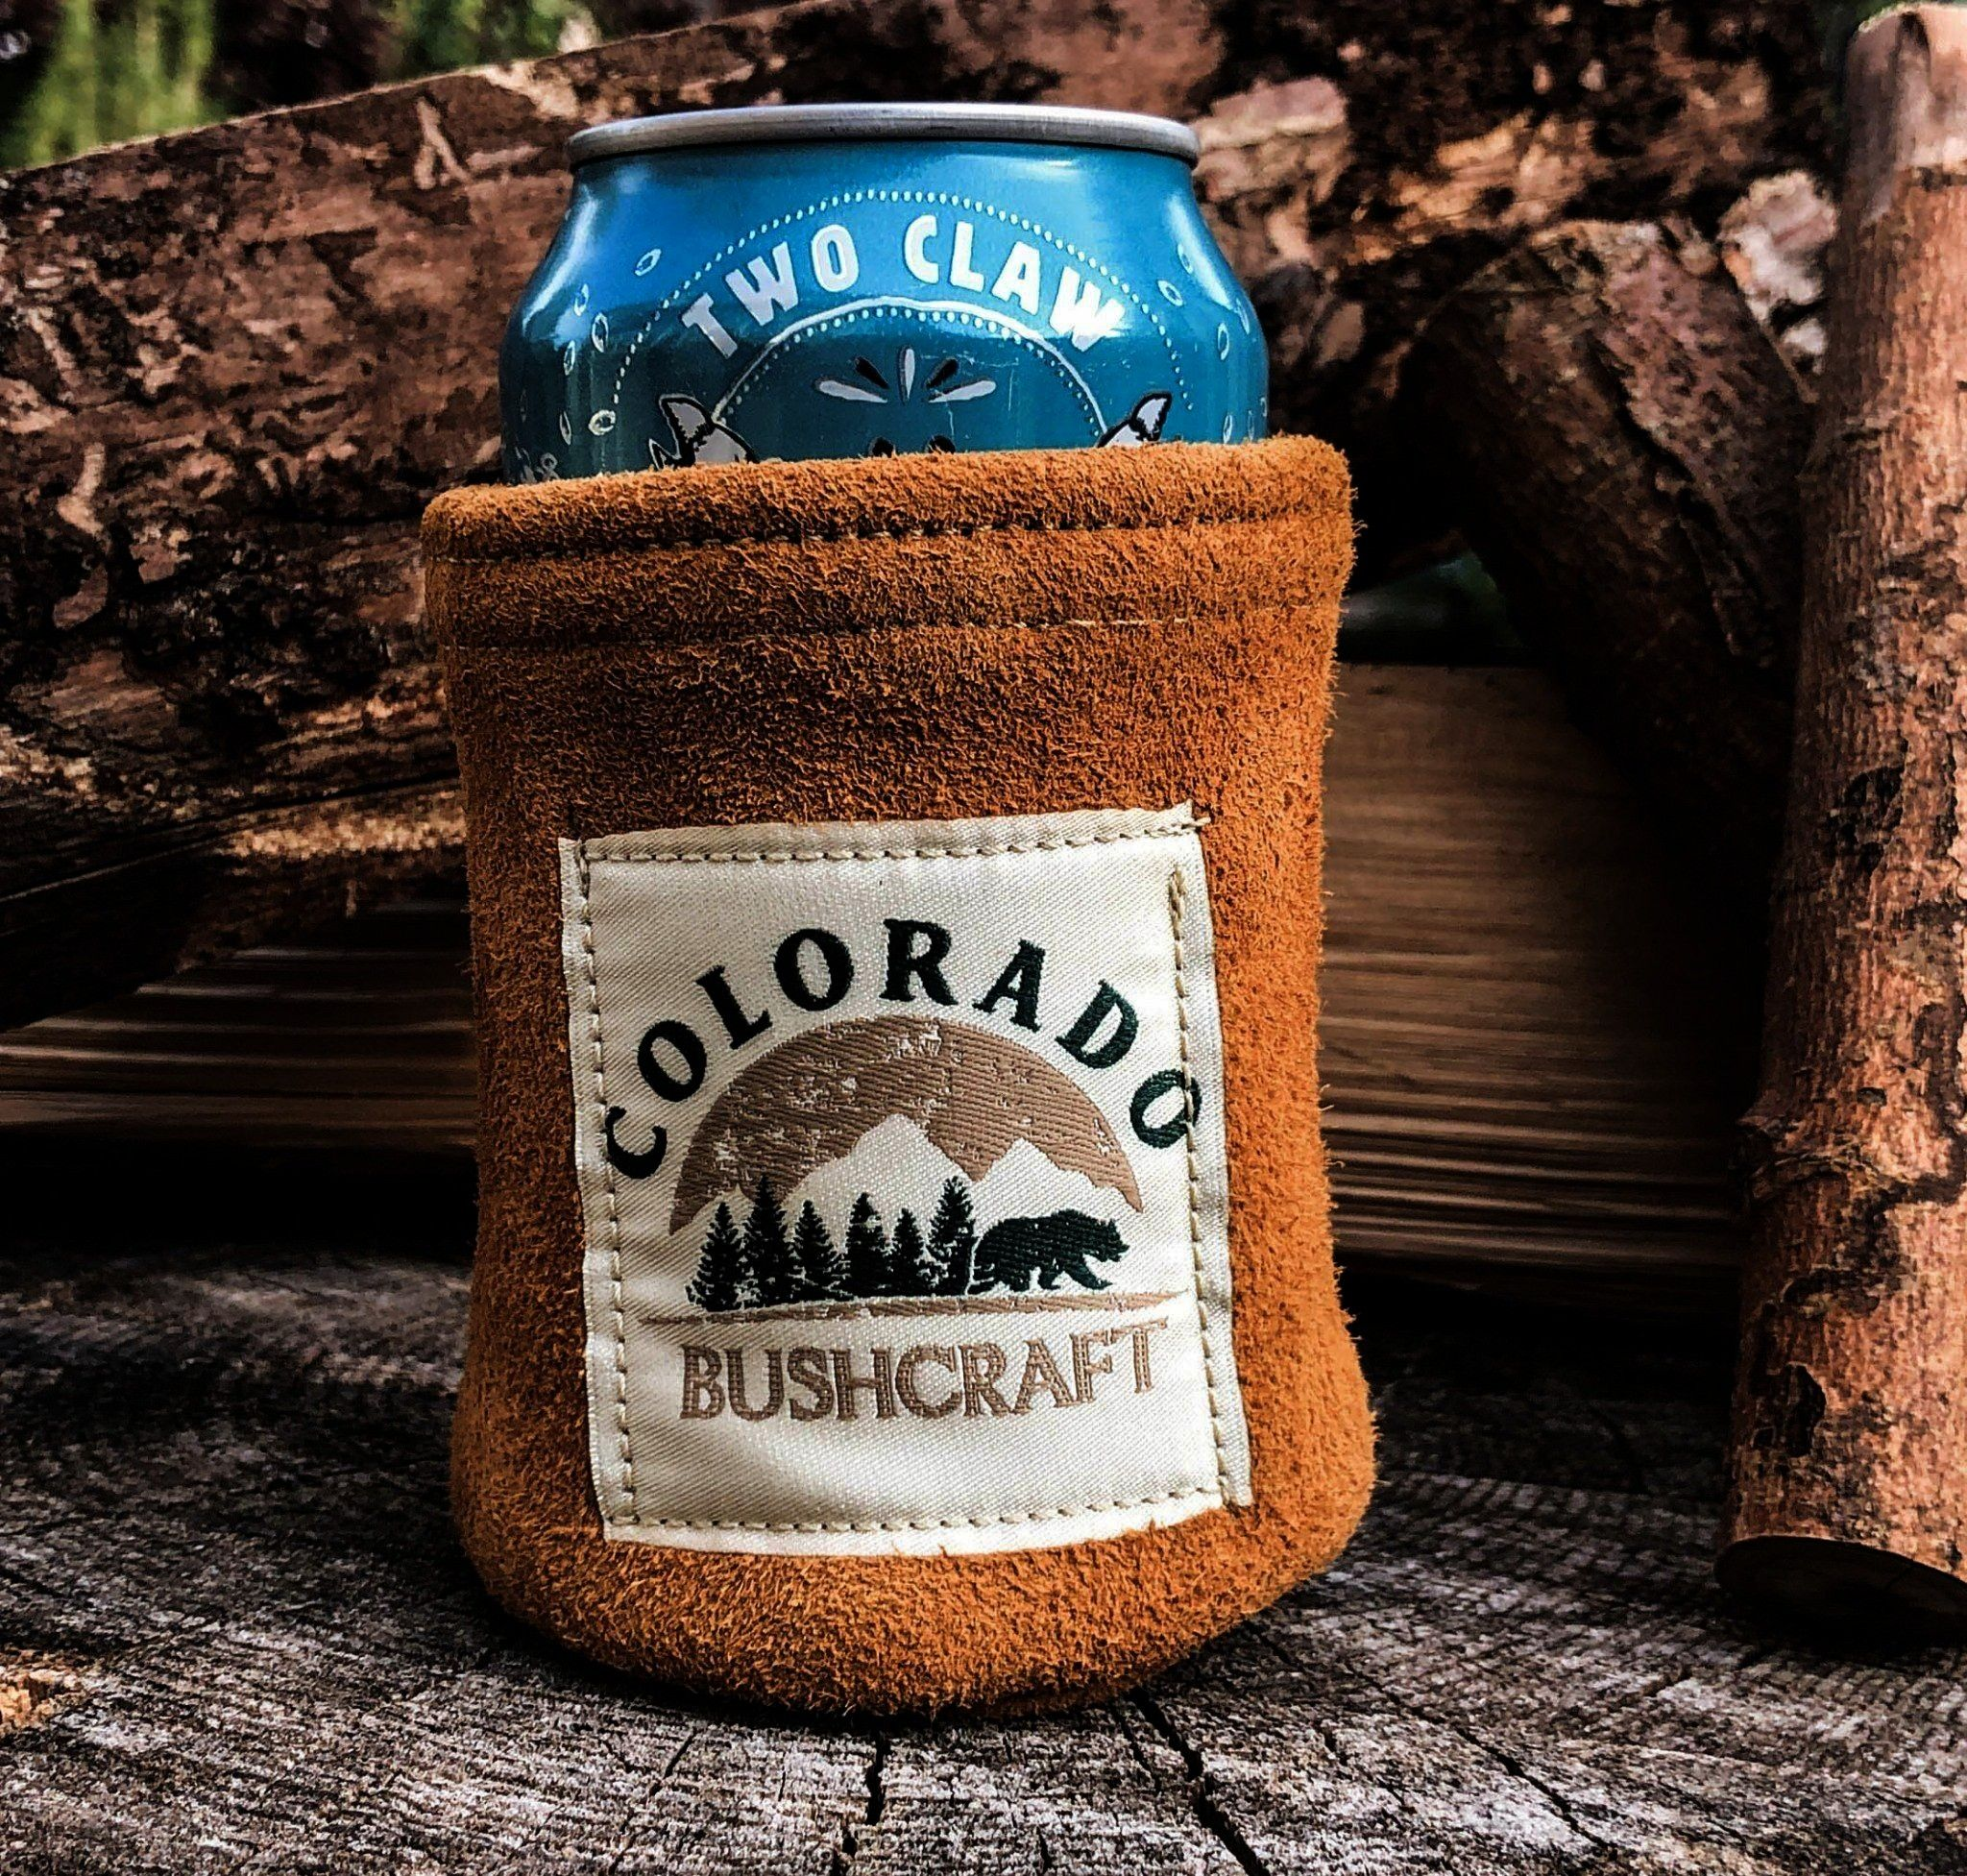 Can Cosy Cooler Coozie Cozy Wool Insulated Tobacco Bushcraft Deerskin Can Cosy Cooler Coozie Cozy Wool Insulated Tobacco Bushcraft Deerskin Can Cosy Cooler Coozie Cozy Wo...